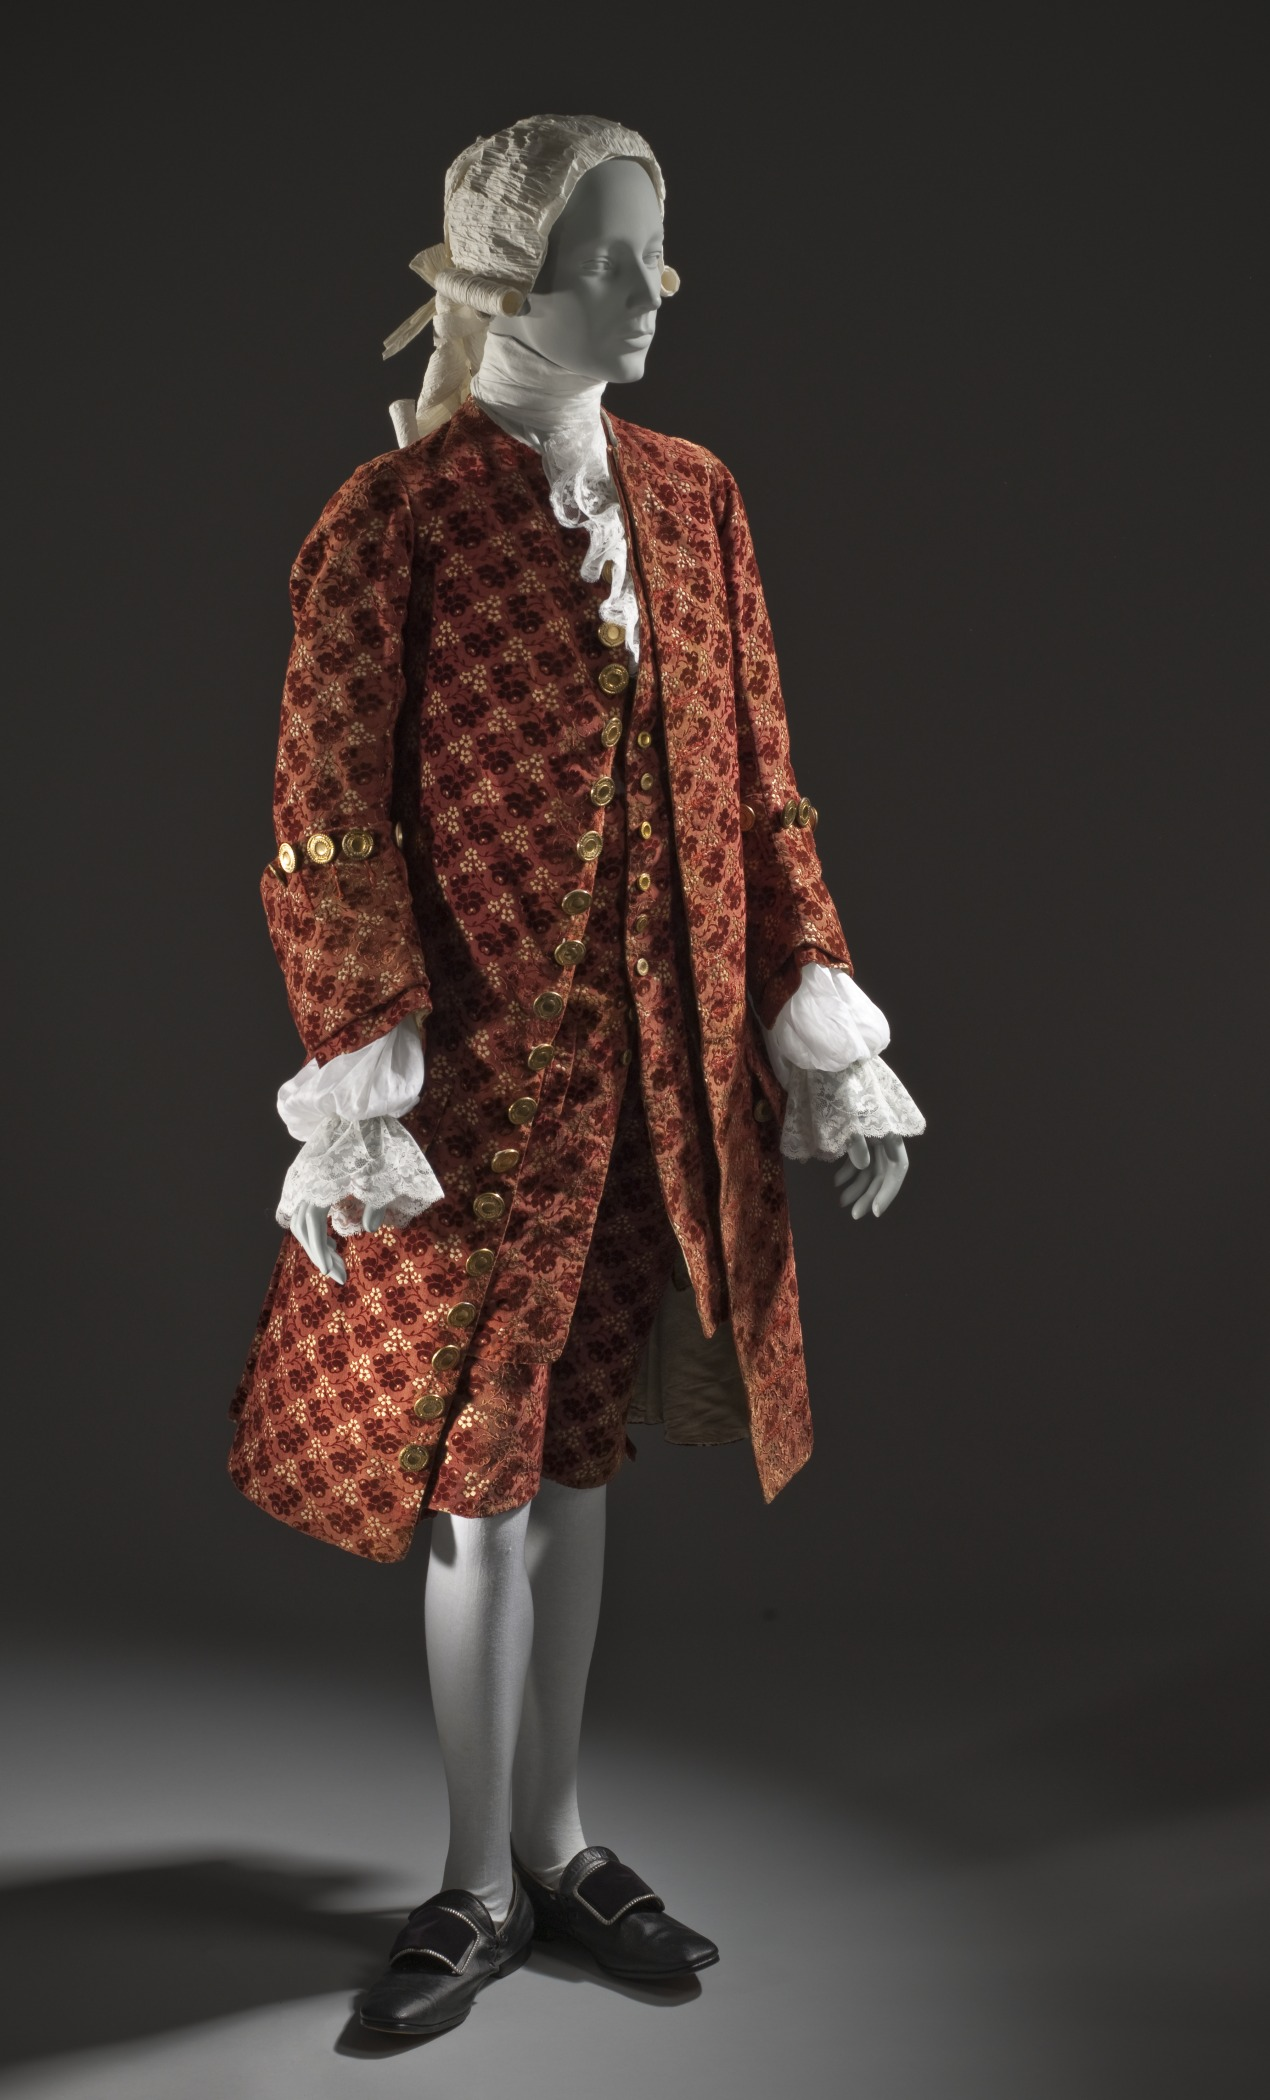 c. 1755 Man's ensemble. Silk cut, uncut, and voided velvet (ciselé) on satin foundation. LACMA